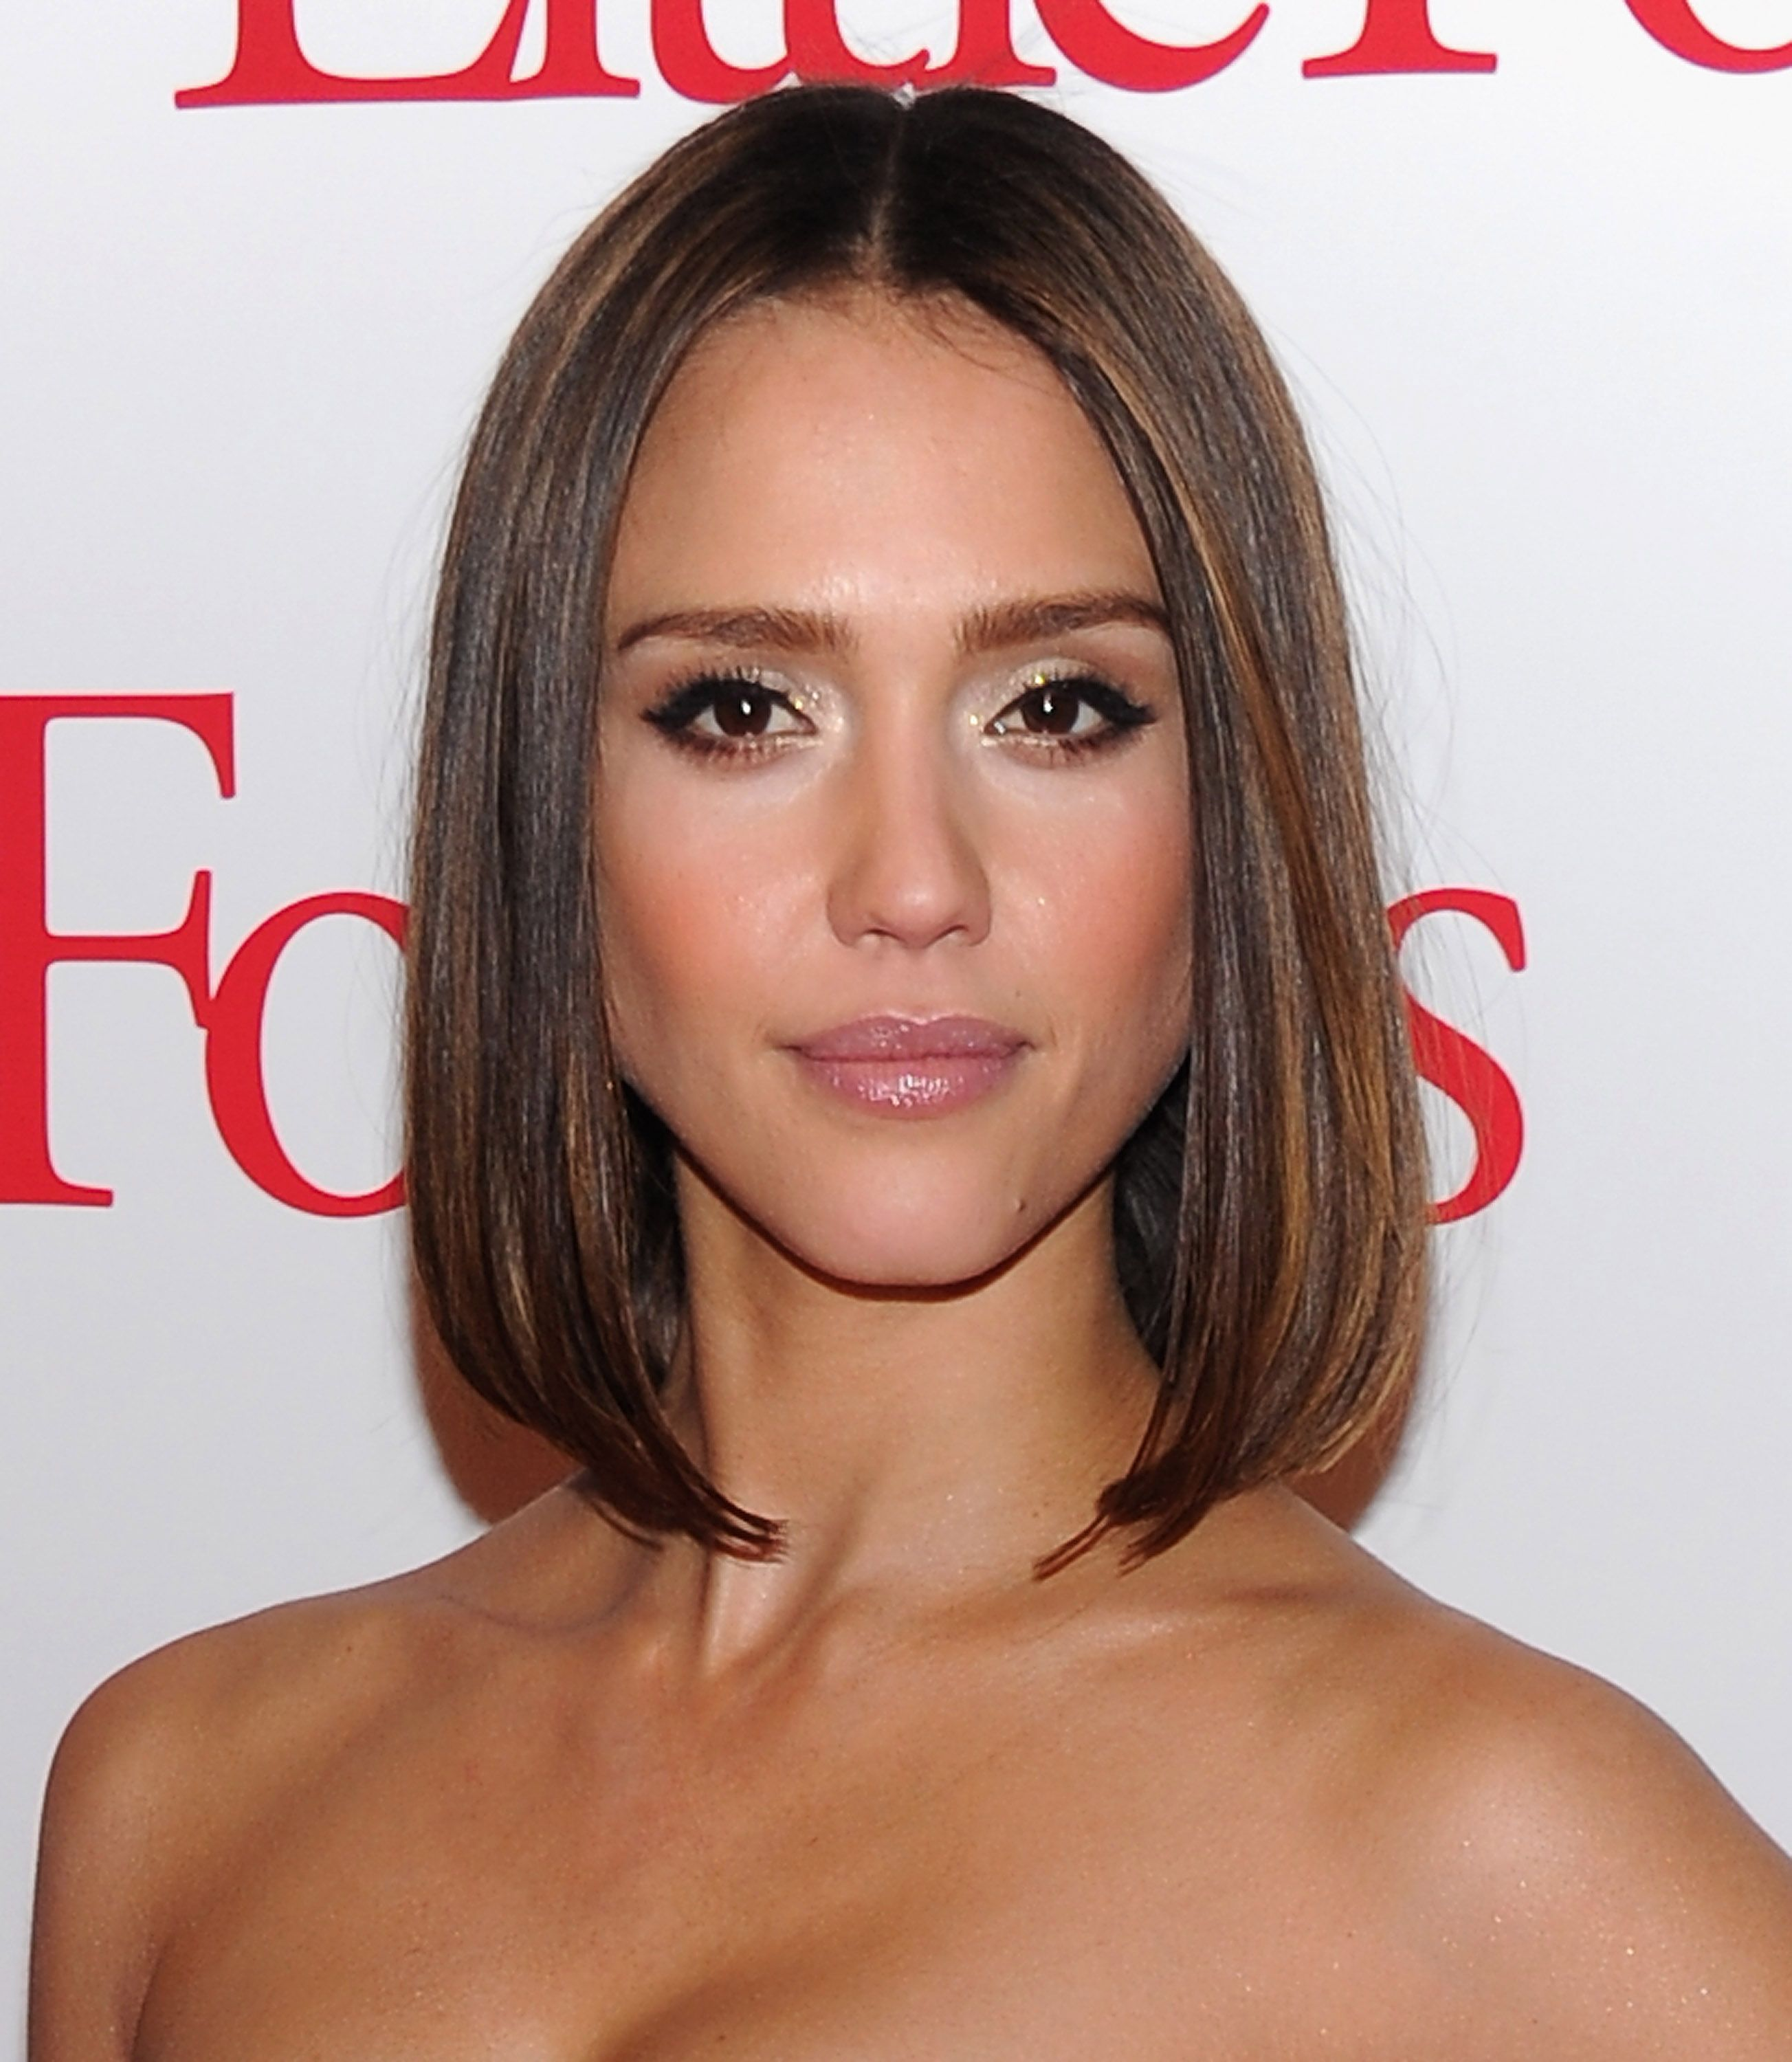 Timeless Hairstyles That Will Always Look Good Lob Long Bob - Bob hairstyle names